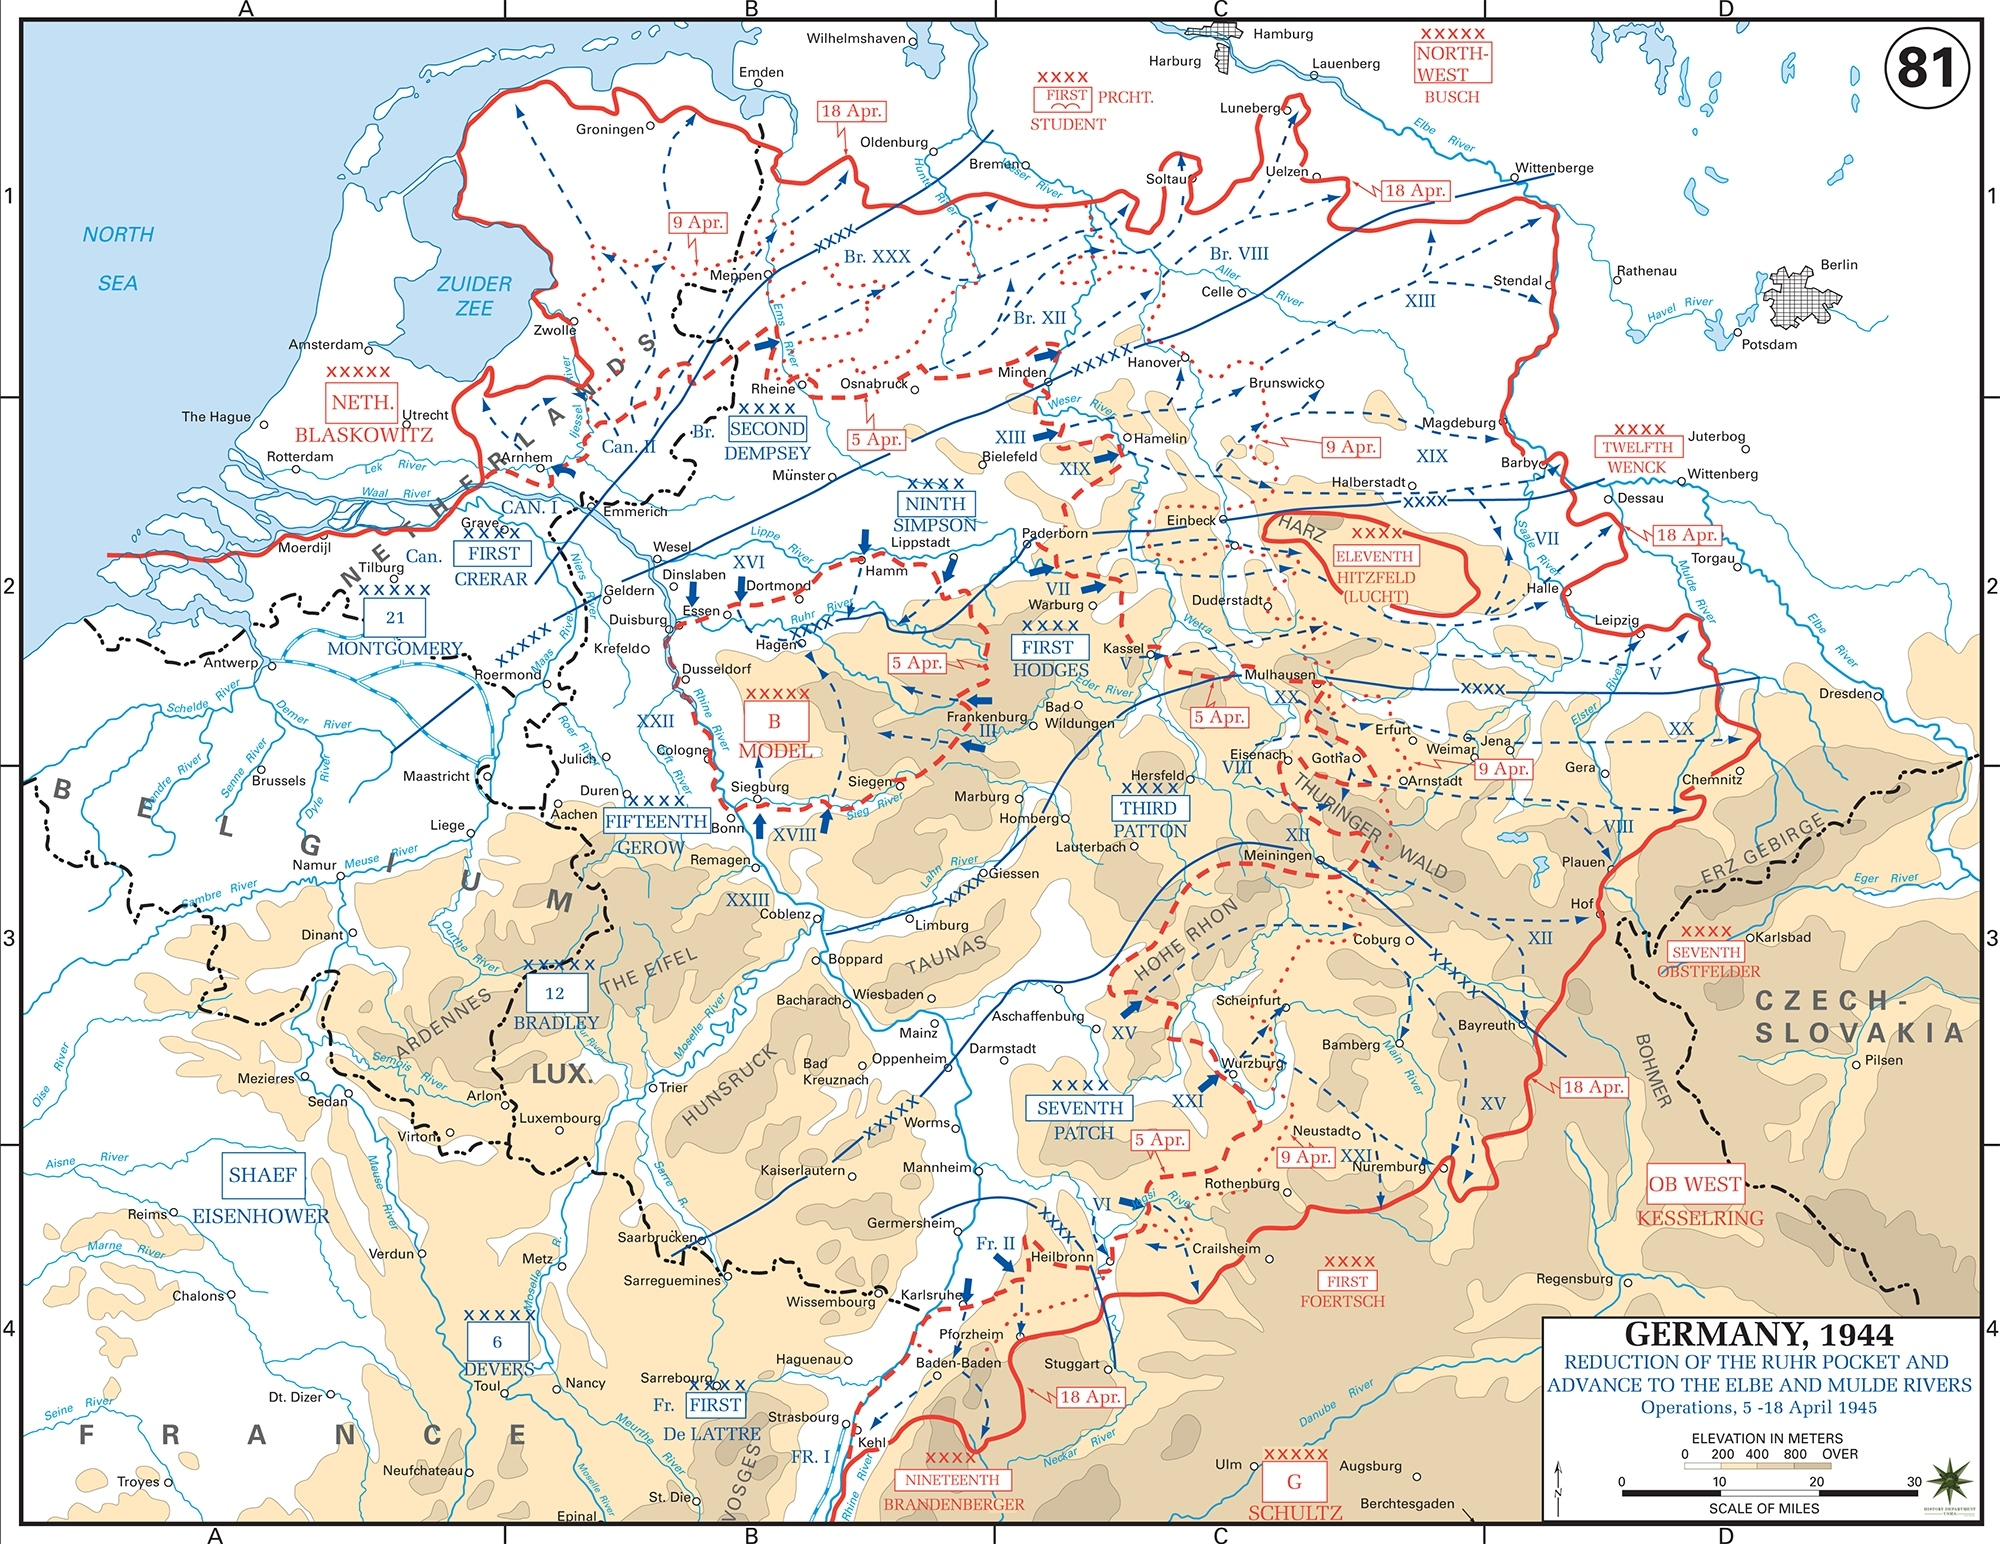 Map Of Wwii: Germany April 1945 throughout Germany Ww2 Map